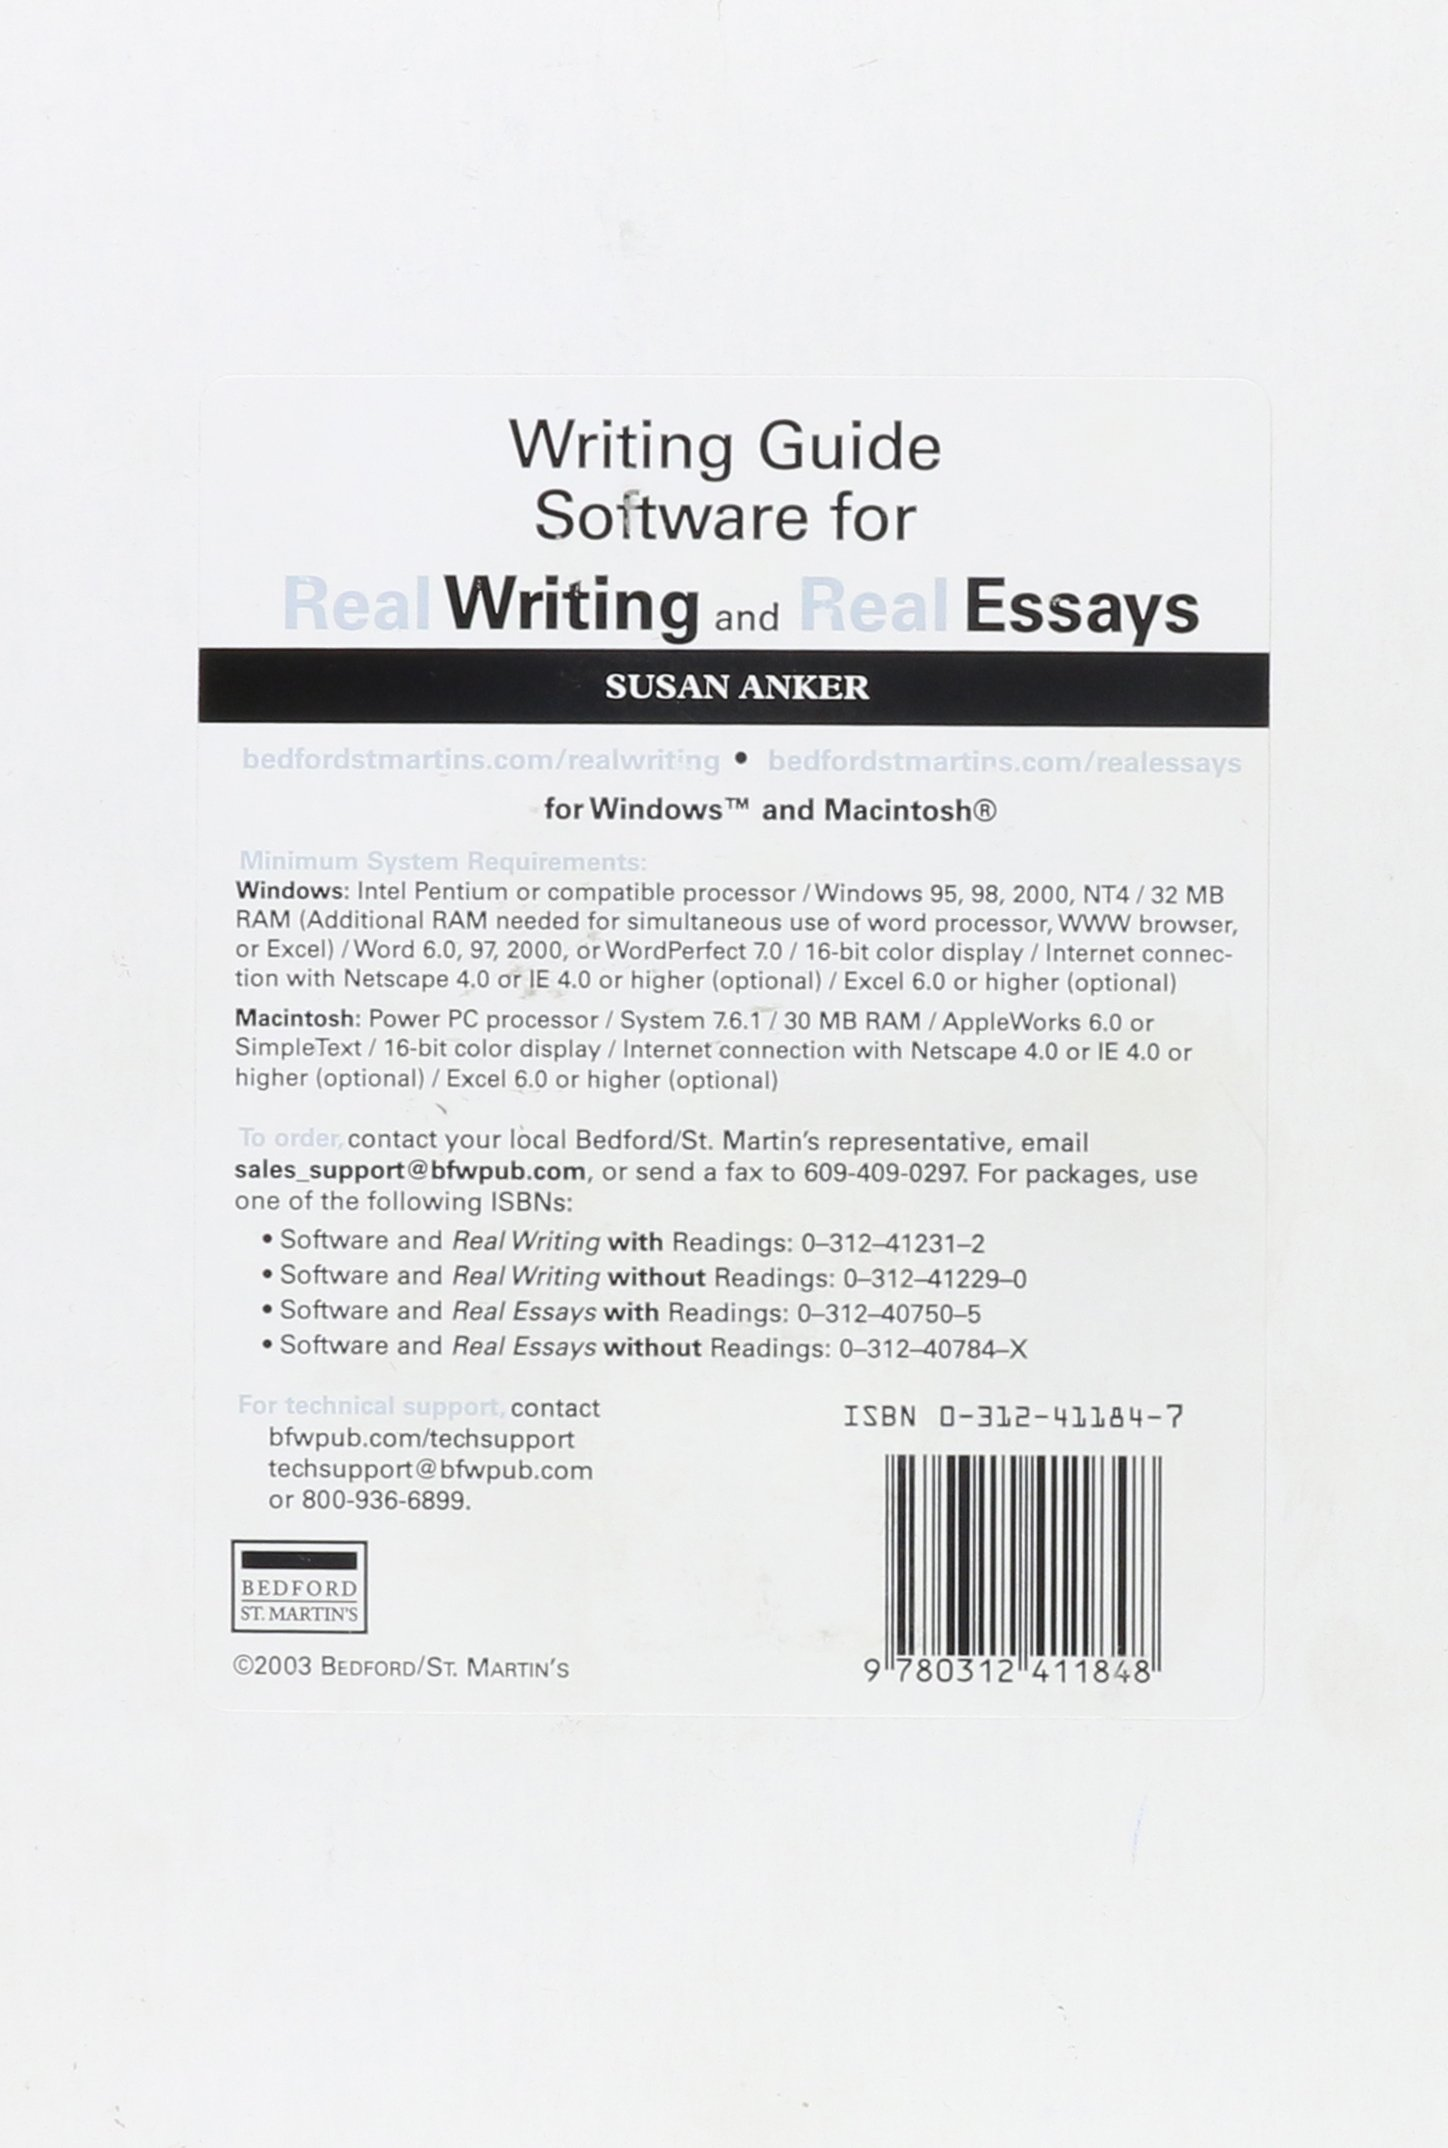 Science Argumentative Essay Topics Writing Guide Software For Real Writing And Real Essays Susan Anker   Amazoncom Books Essay About Science And Technology also English Is My Second Language Essay Writing Guide Software For Real Writing And Real Essays Susan Anker  Personal Essay Examples High School